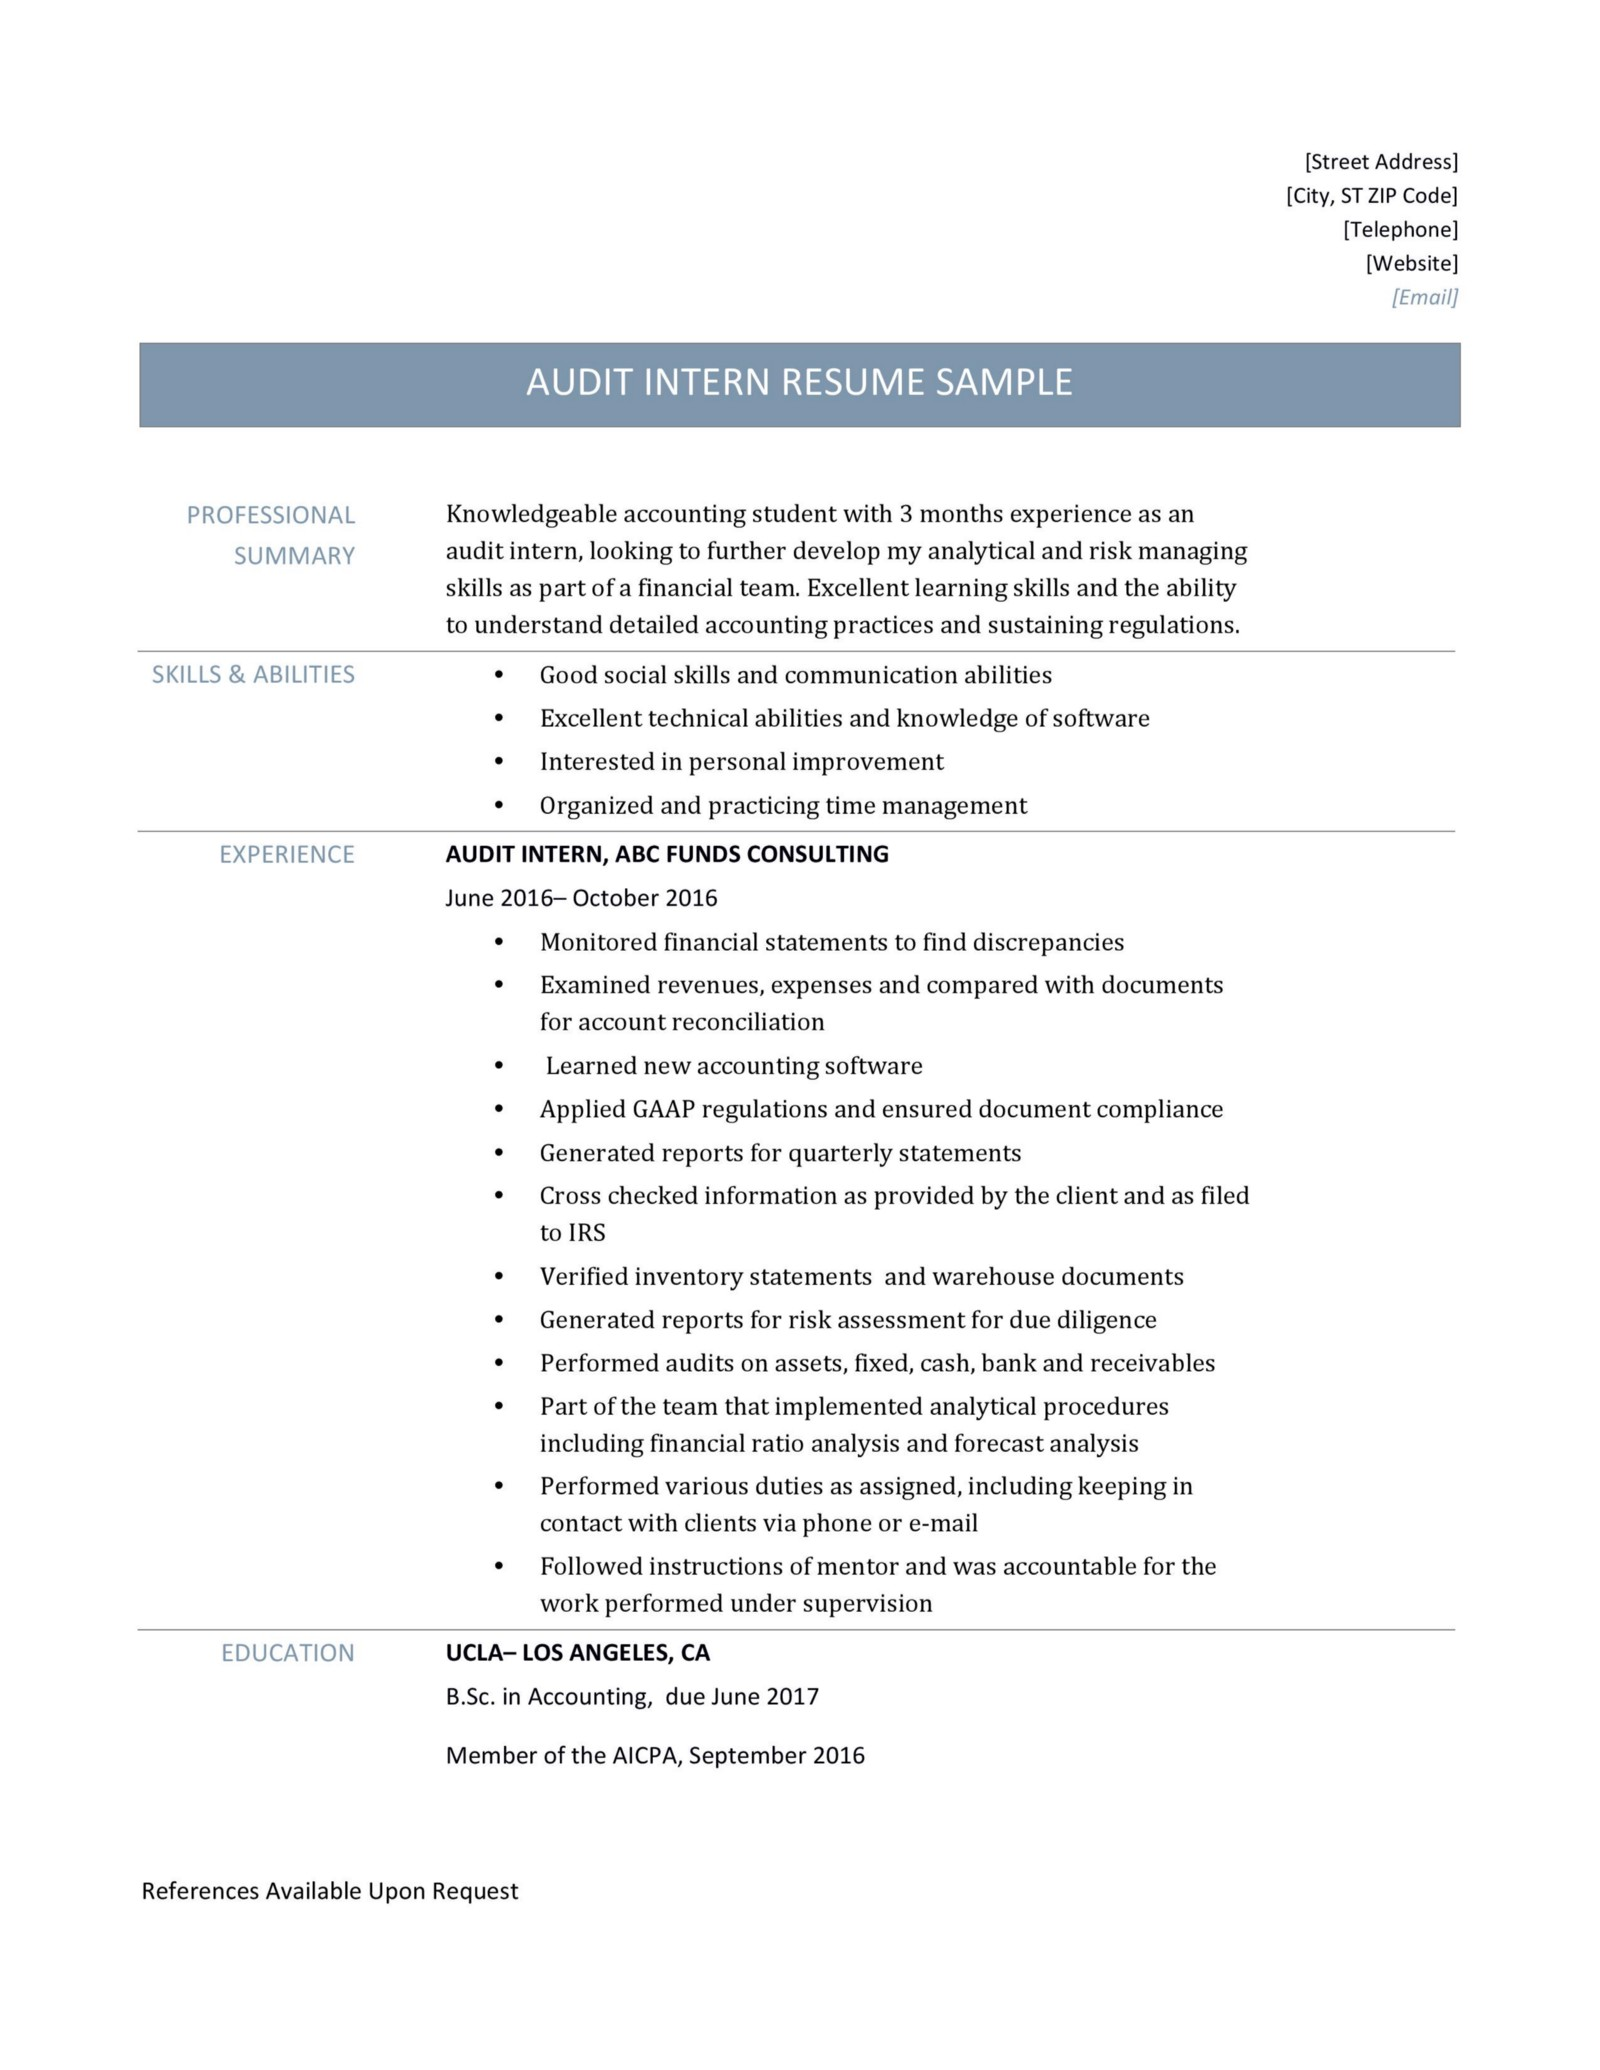 audit intern resume samples  u2013 online resume builders  u2013 medium